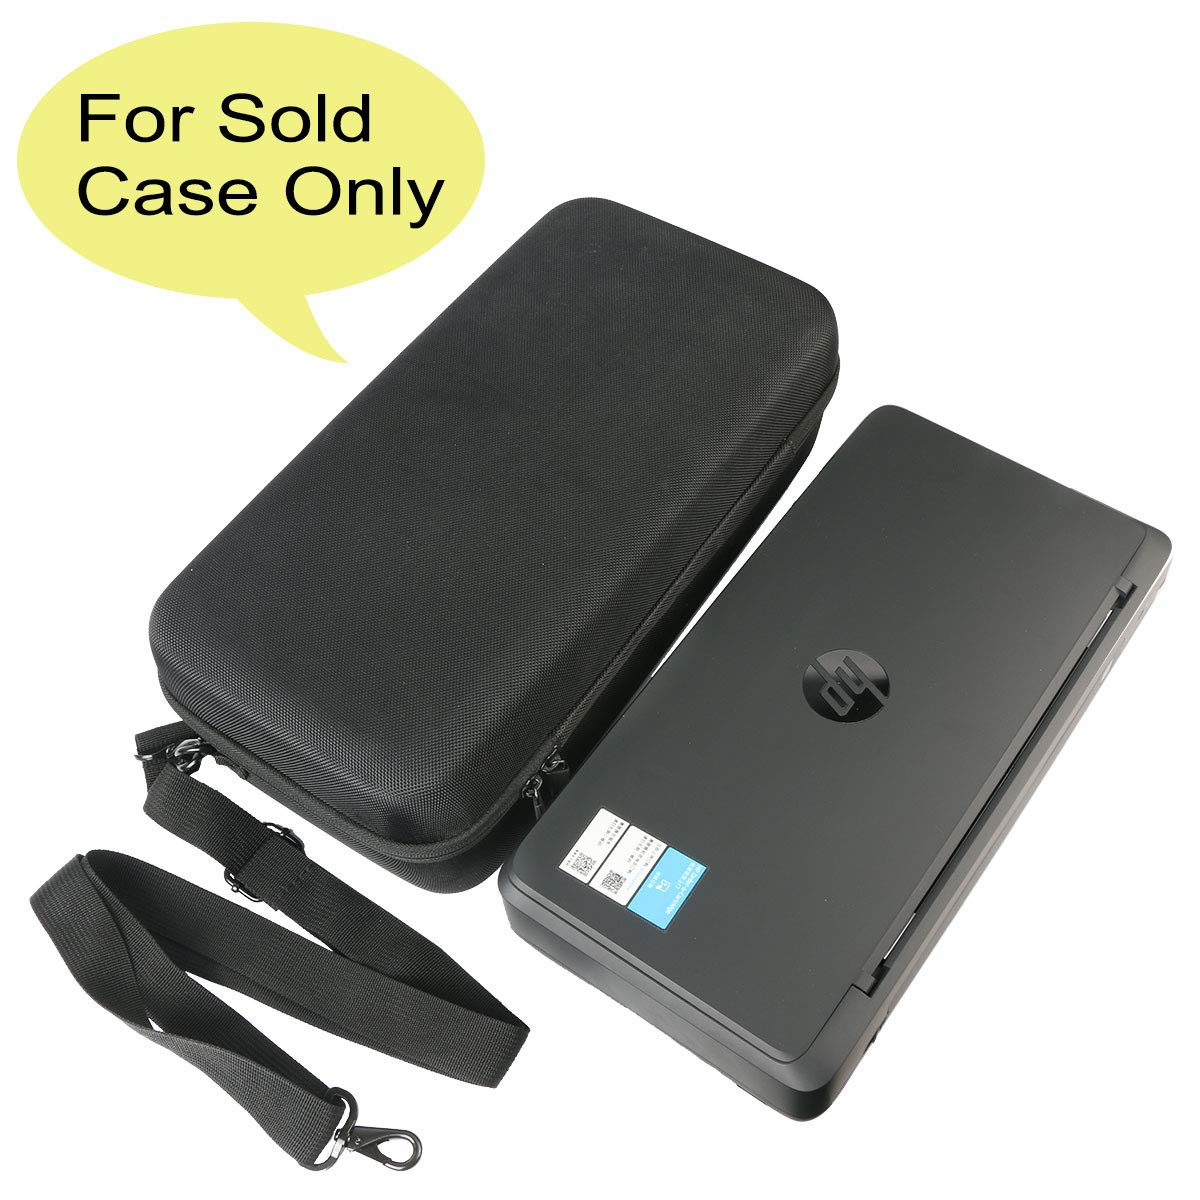 co2crea Hard Travel Case for HP OfficeJet 200 Portable Printer with Wireless Mobile Printing (CZ993A) by Co2Crea (Image #2)